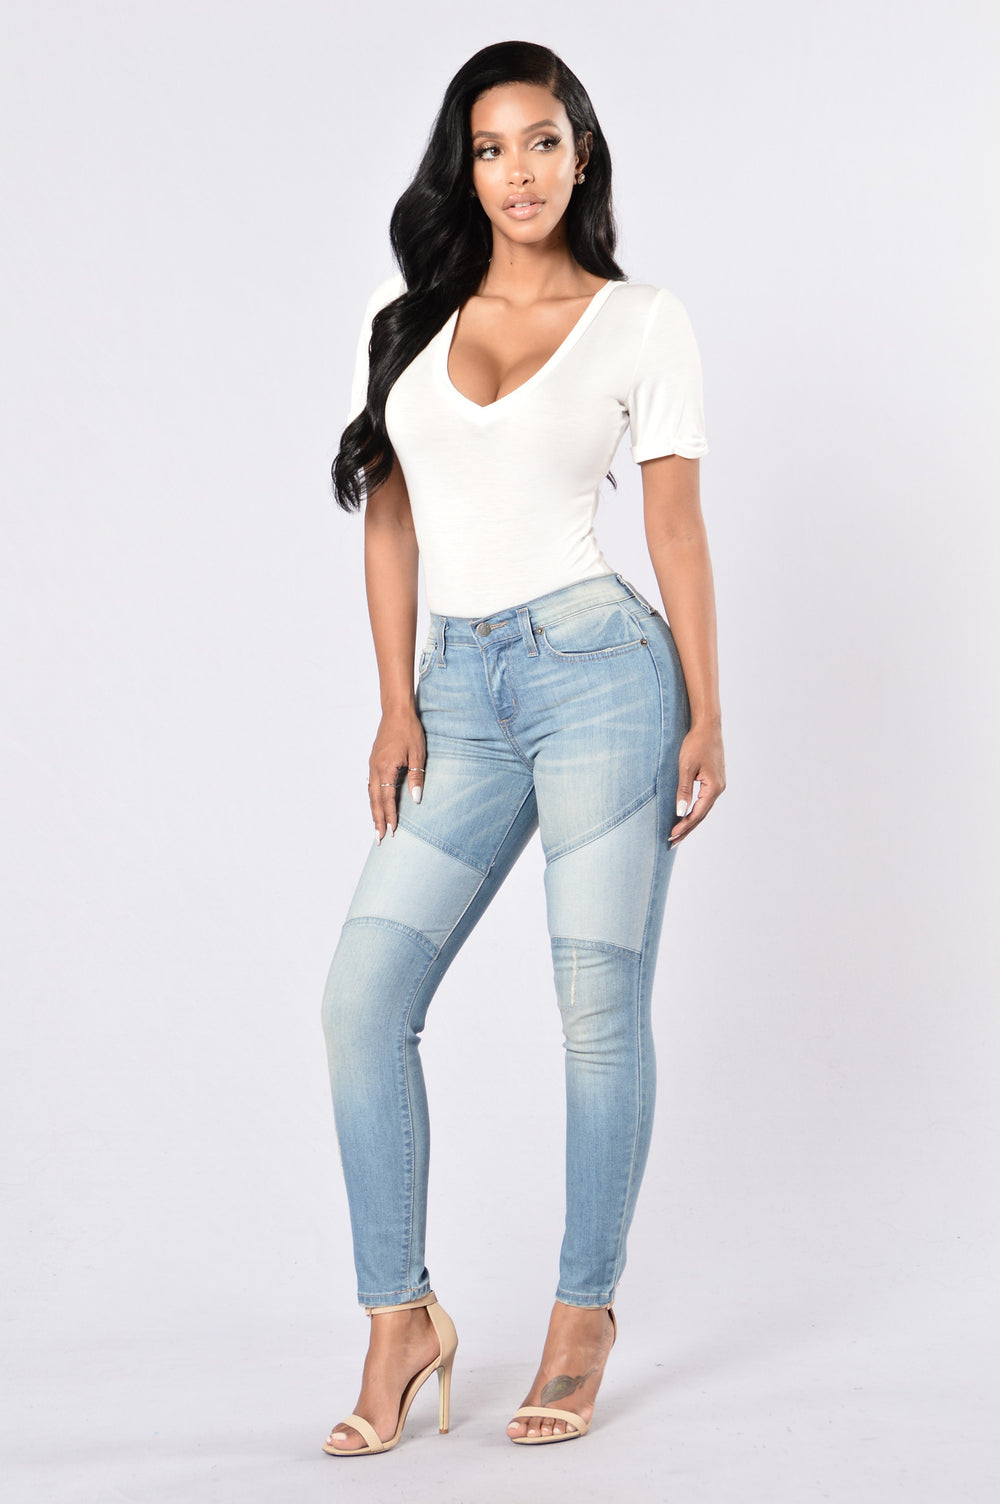 Let's Patch Things Up Jeans - Medium Blue